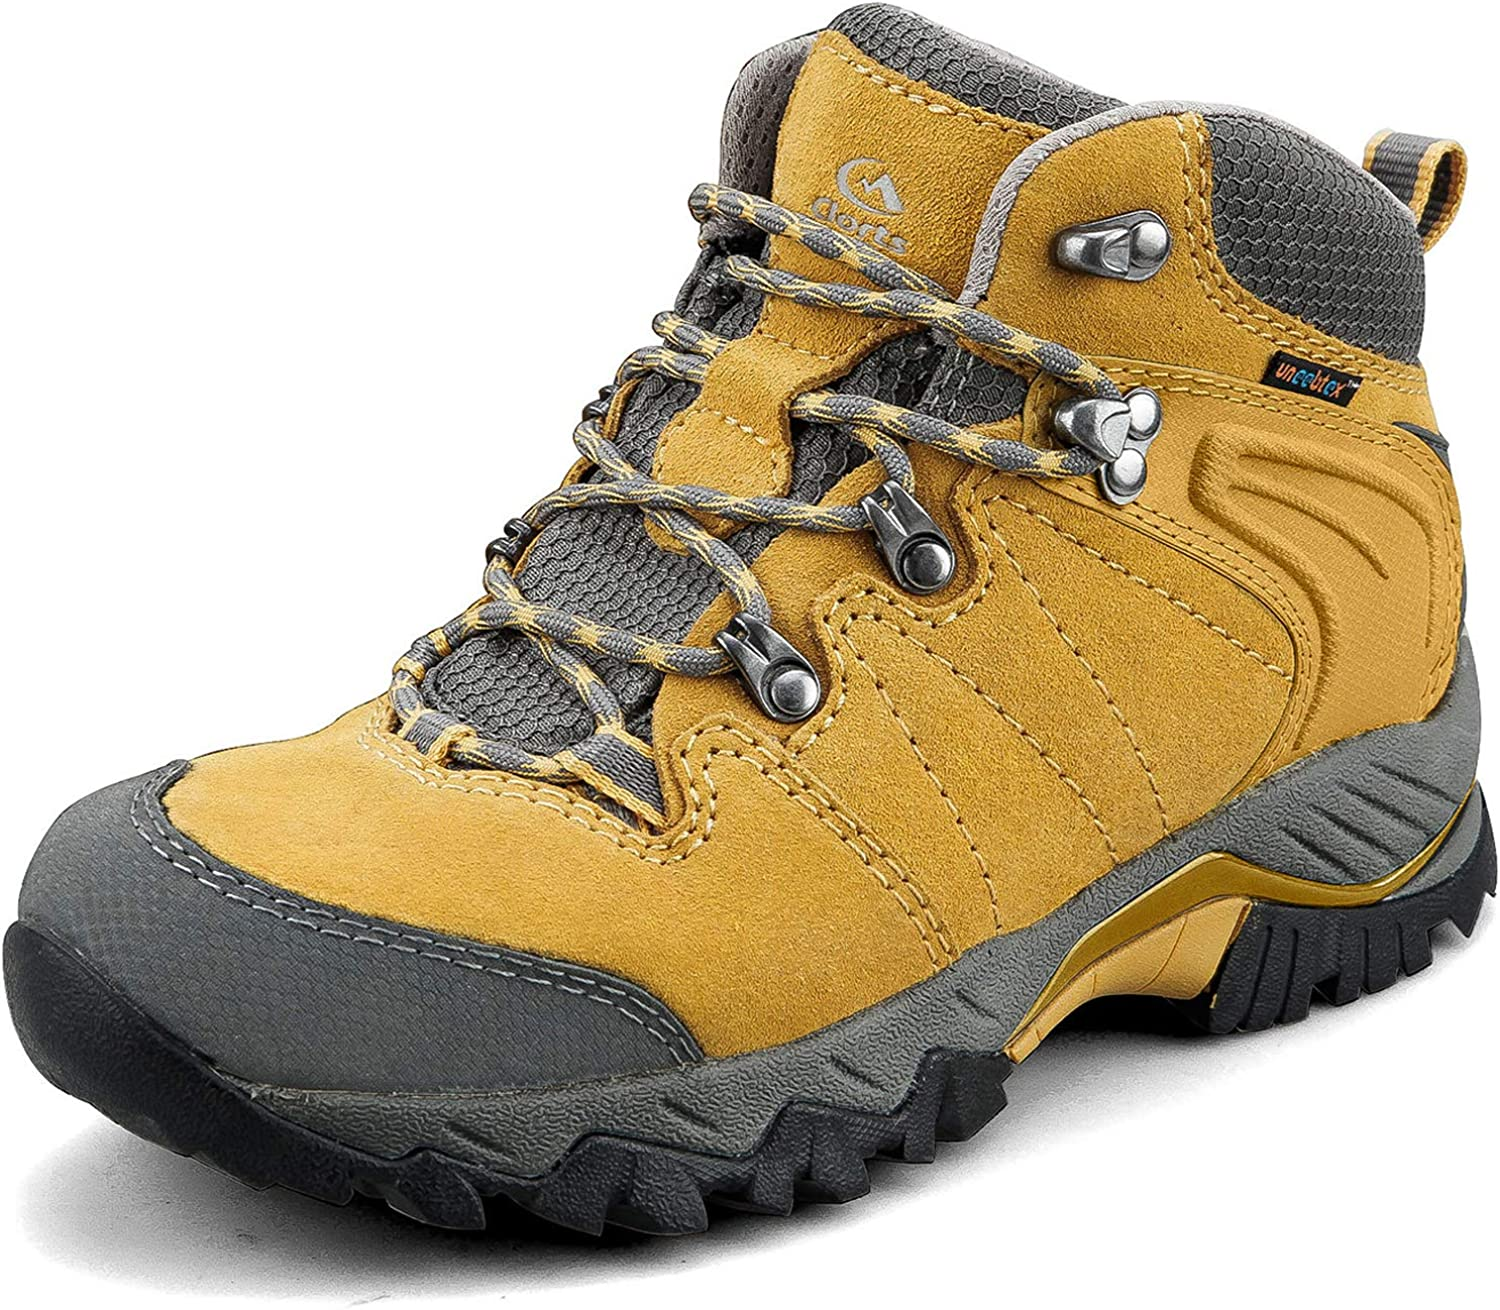 Clorts Women's Pioneer Hiking Boots Waterproof Suede Leather Lightweight Hiking Shoes